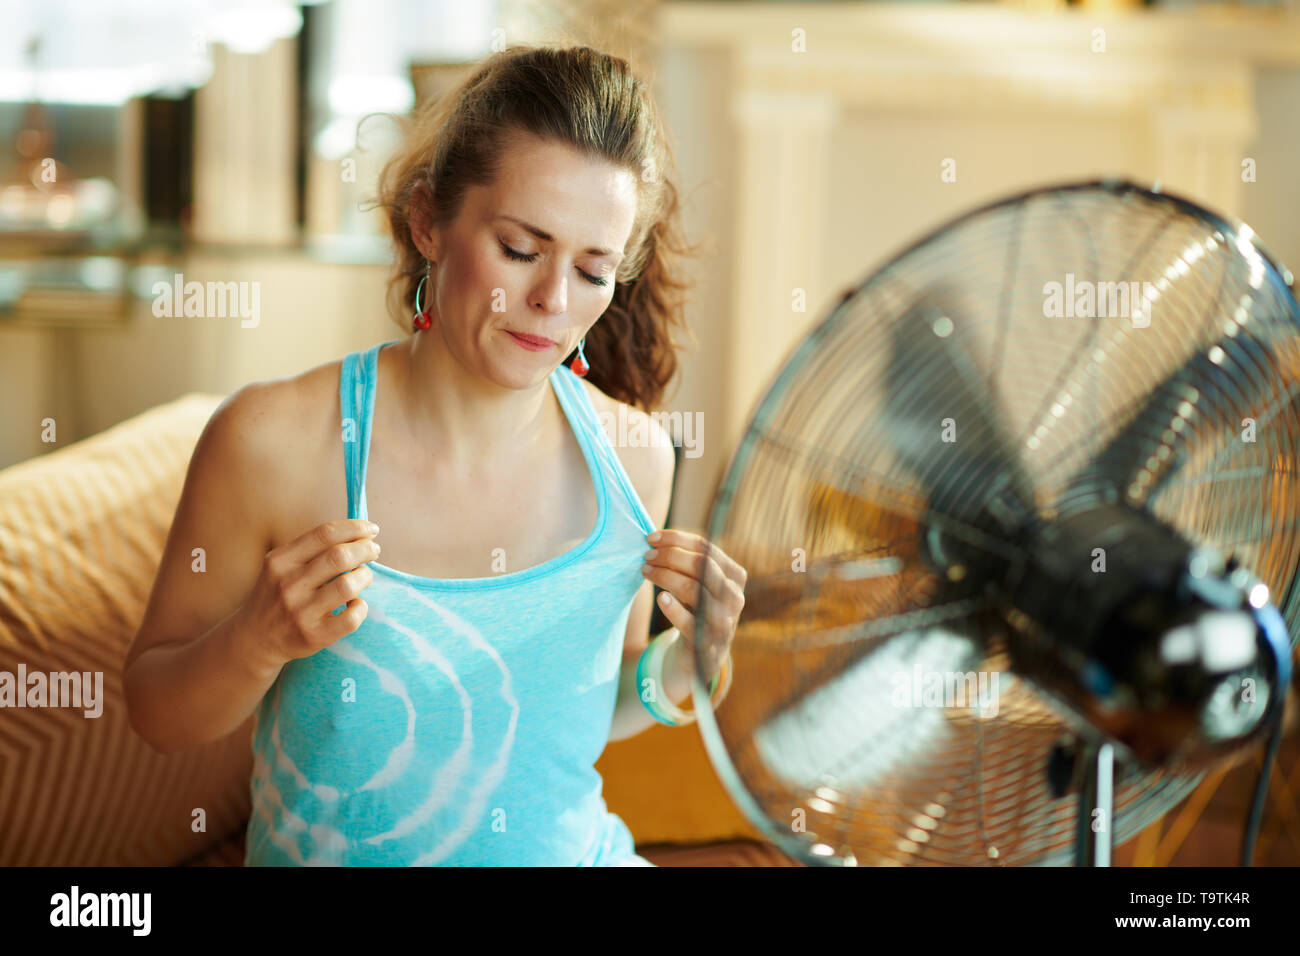 sweating woman at modern home in sunny hot summer day cooling down using electric floor standing fan suffering from summer heat. - Stock Image